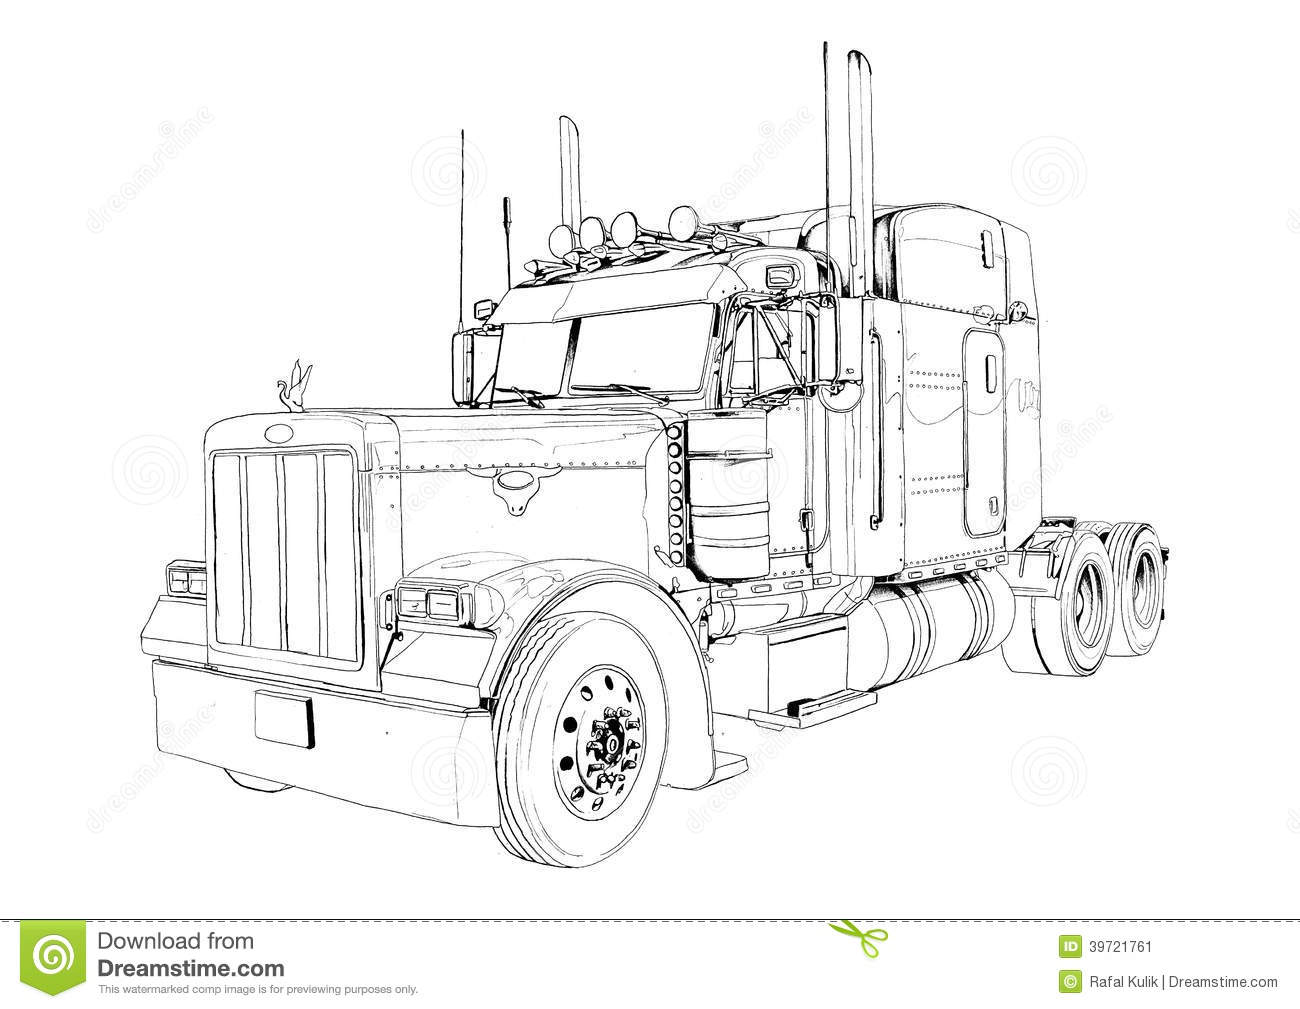 Dessin d 39 art d 39 isolement par couleur d 39 illustration de - Dessin de camion semi remorque ...